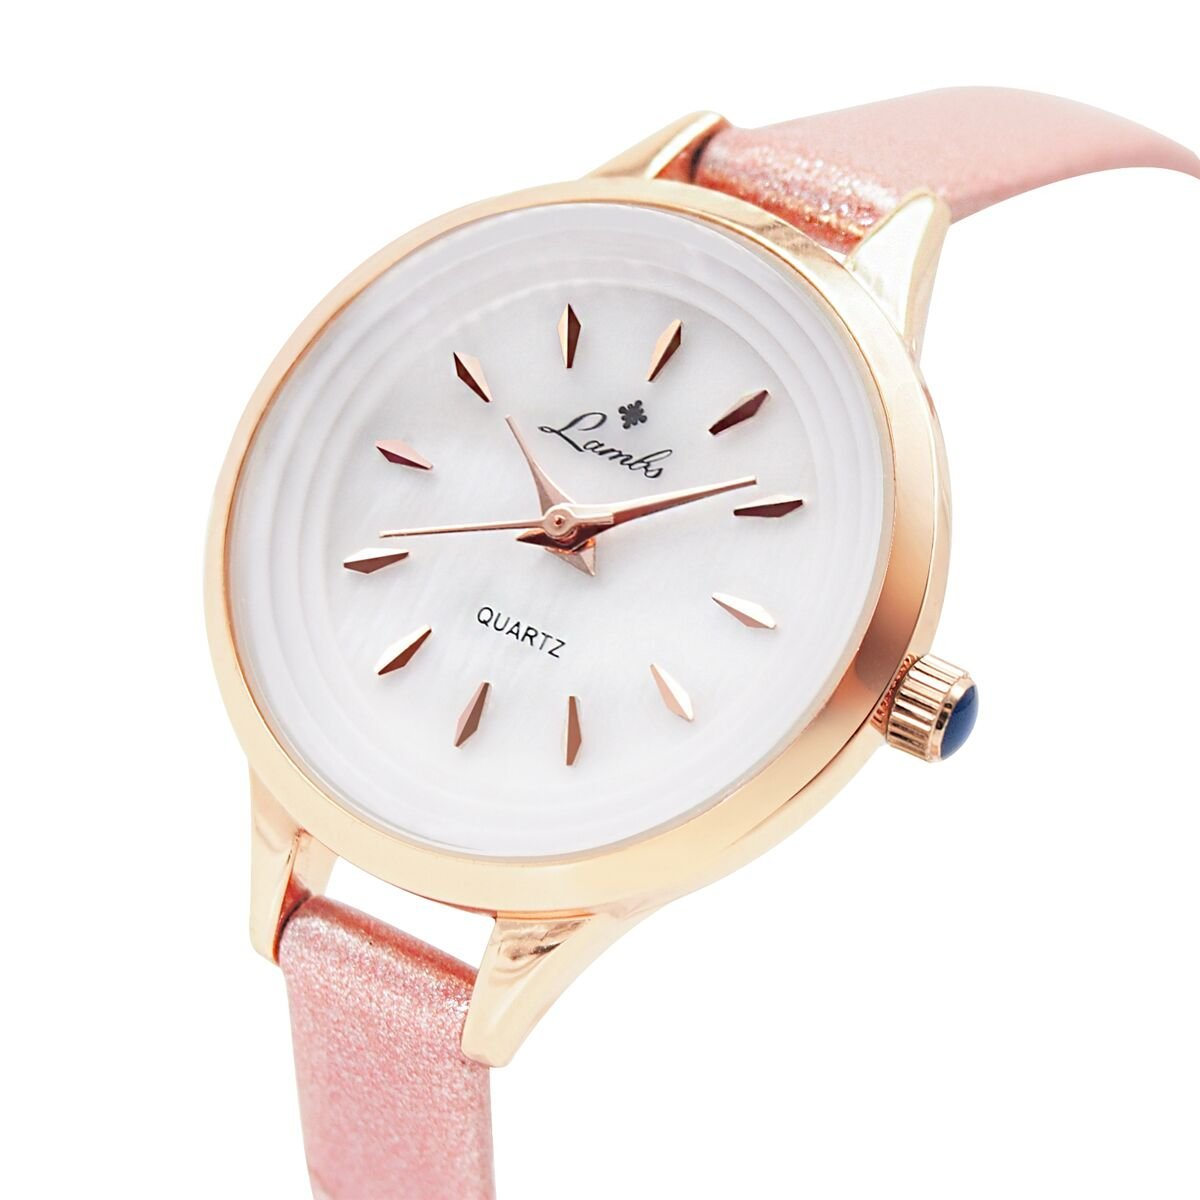 Ladies Watches,Girls Waterproof Watch Elegant Fashion Casual Watches for Women,Wrist Watches Easy to Read Times Leather Band Strap for Girls Watch(Pink)